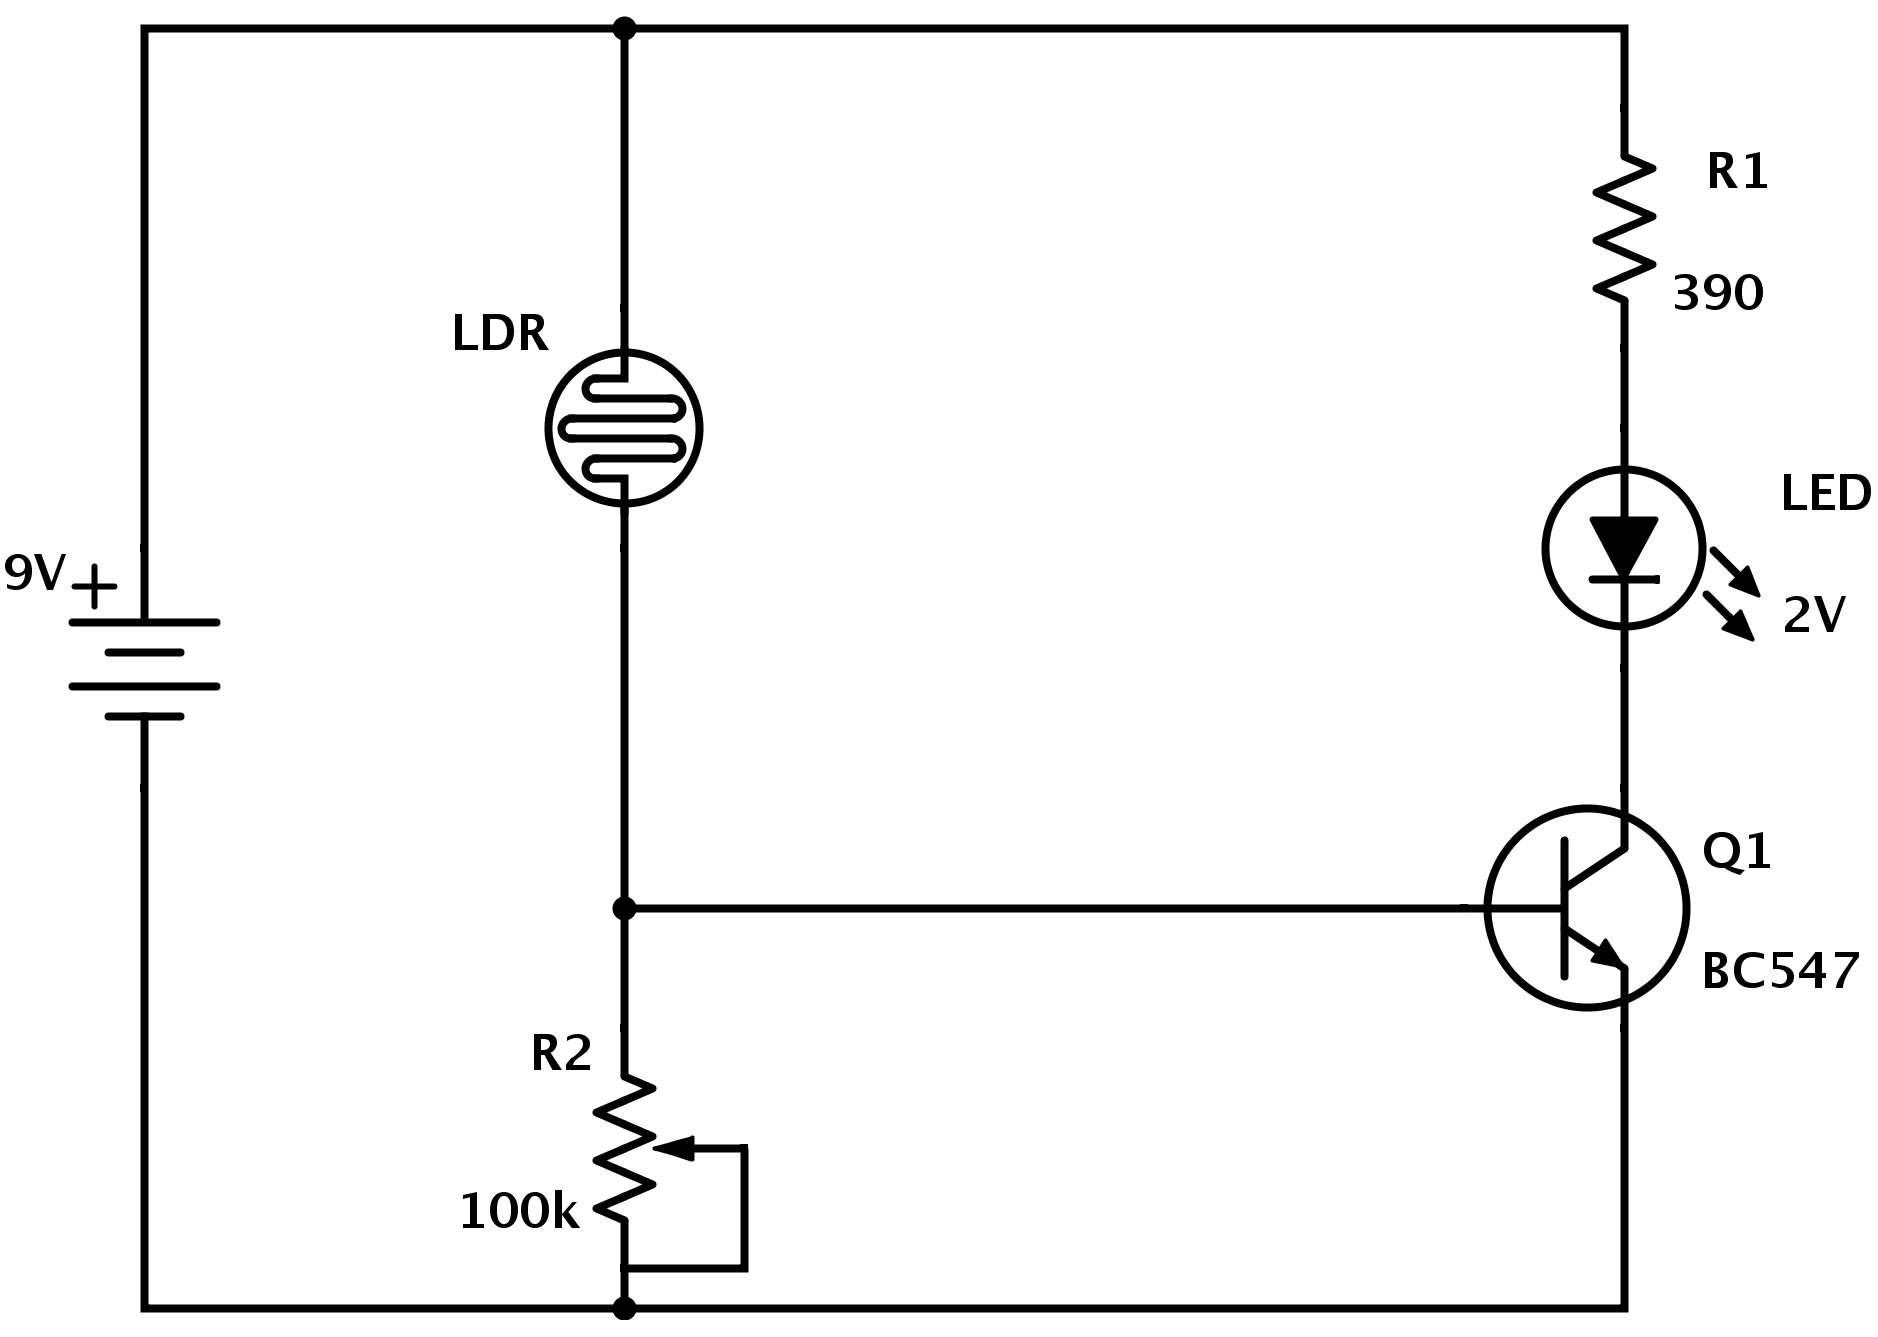 25 Unique Ldr Circuit Ideas